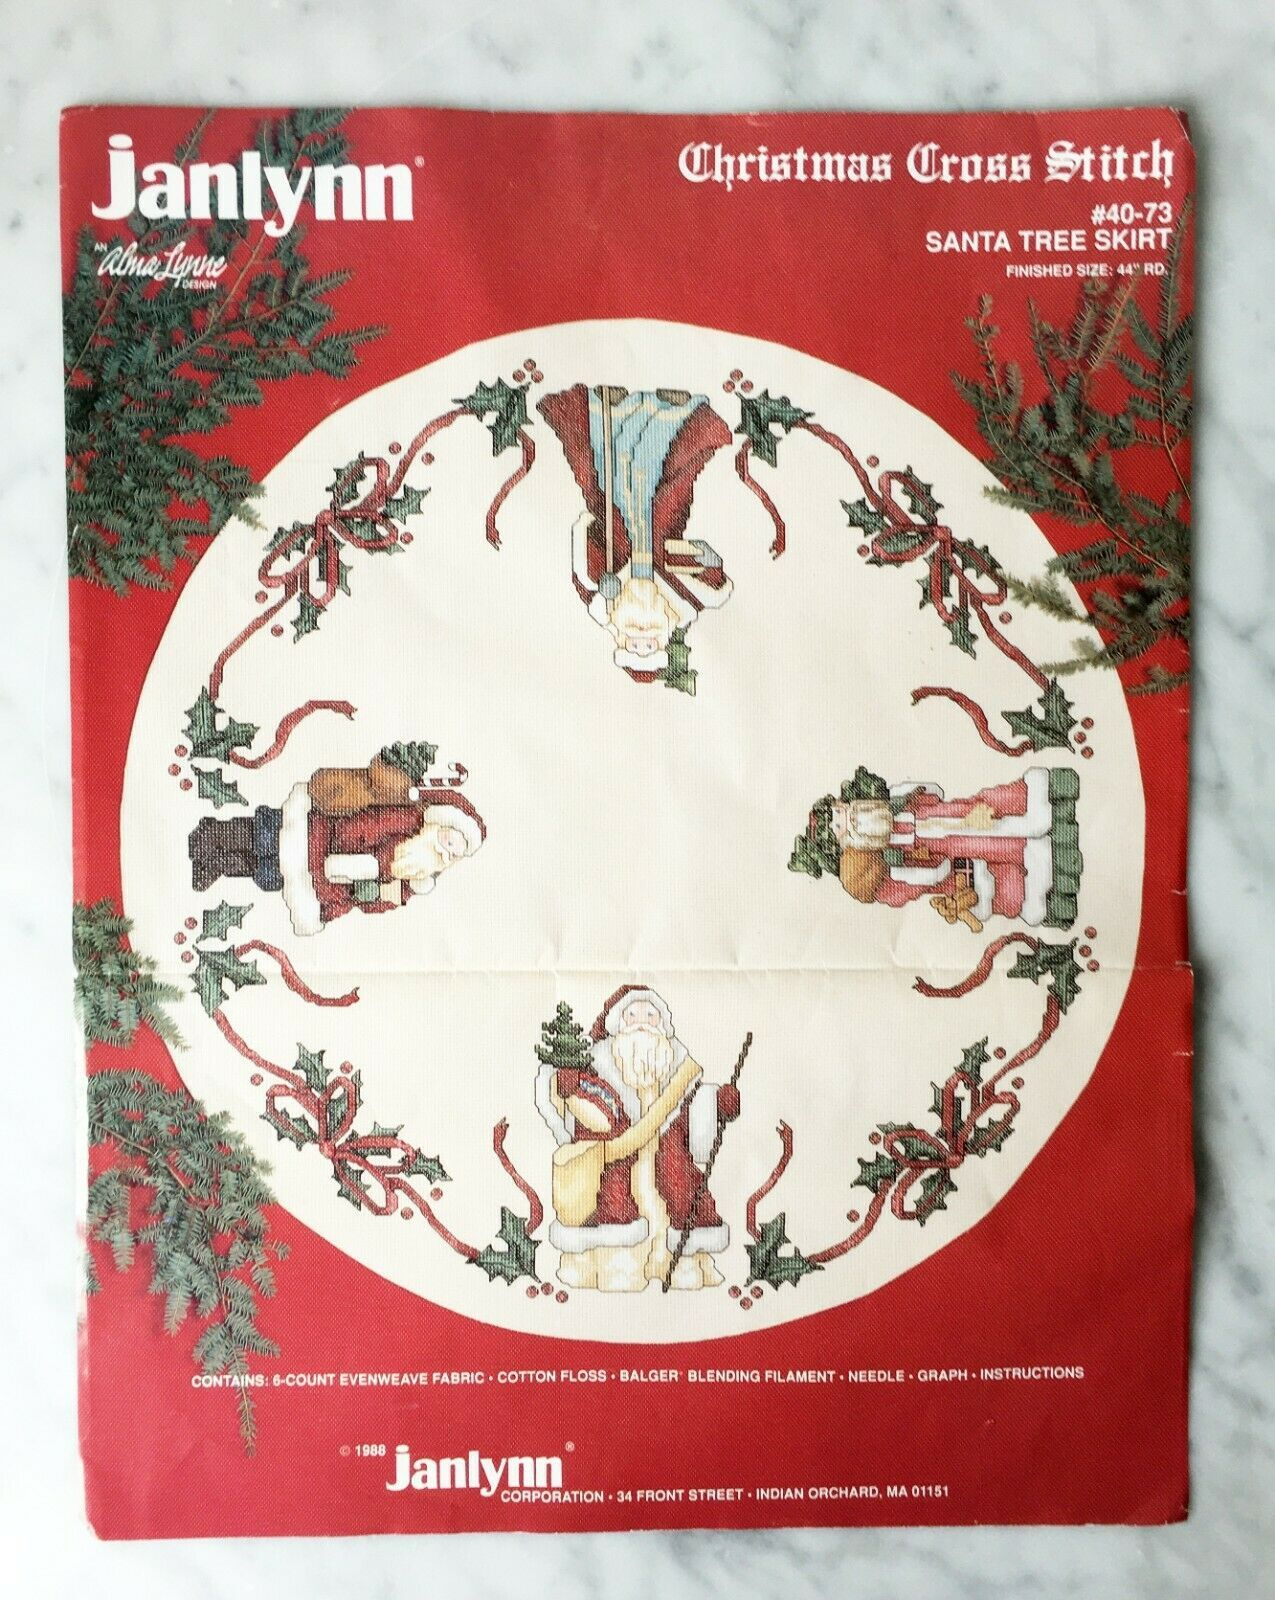 Primary image for Vintage Janlynn Christmas Cross Stitch Santa Tree Skirt Kit #40-73 - Started